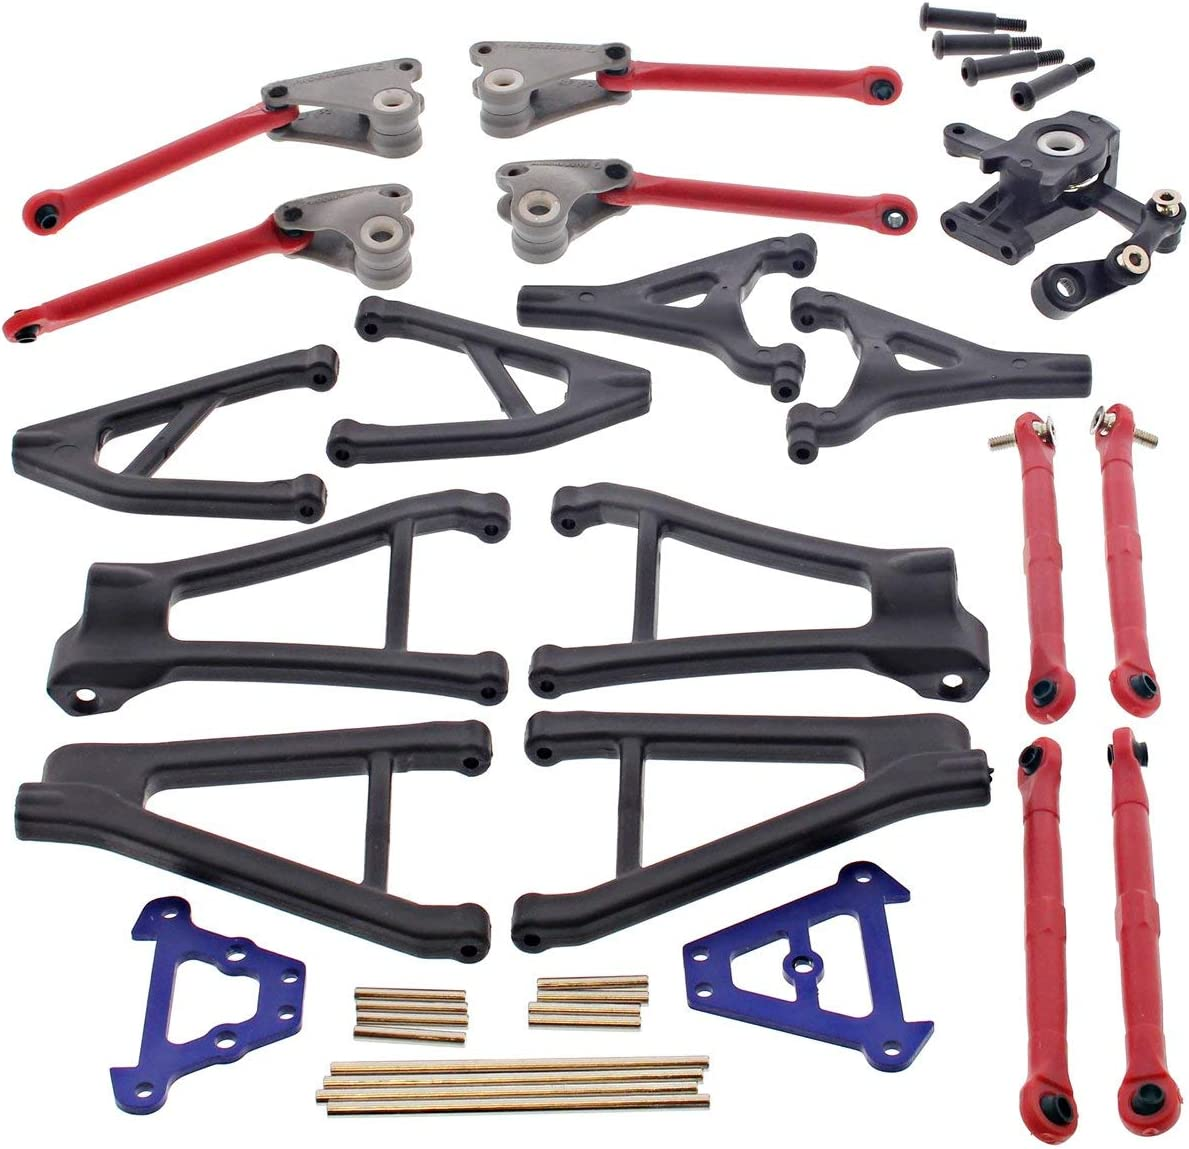 B01JF6QAG2 Traxxas 1/16 Mini Slash 4x4 SUSPENSION ARMS PINS & TURNBUCKLES SERVO SAVER 71gYOaHhXJL